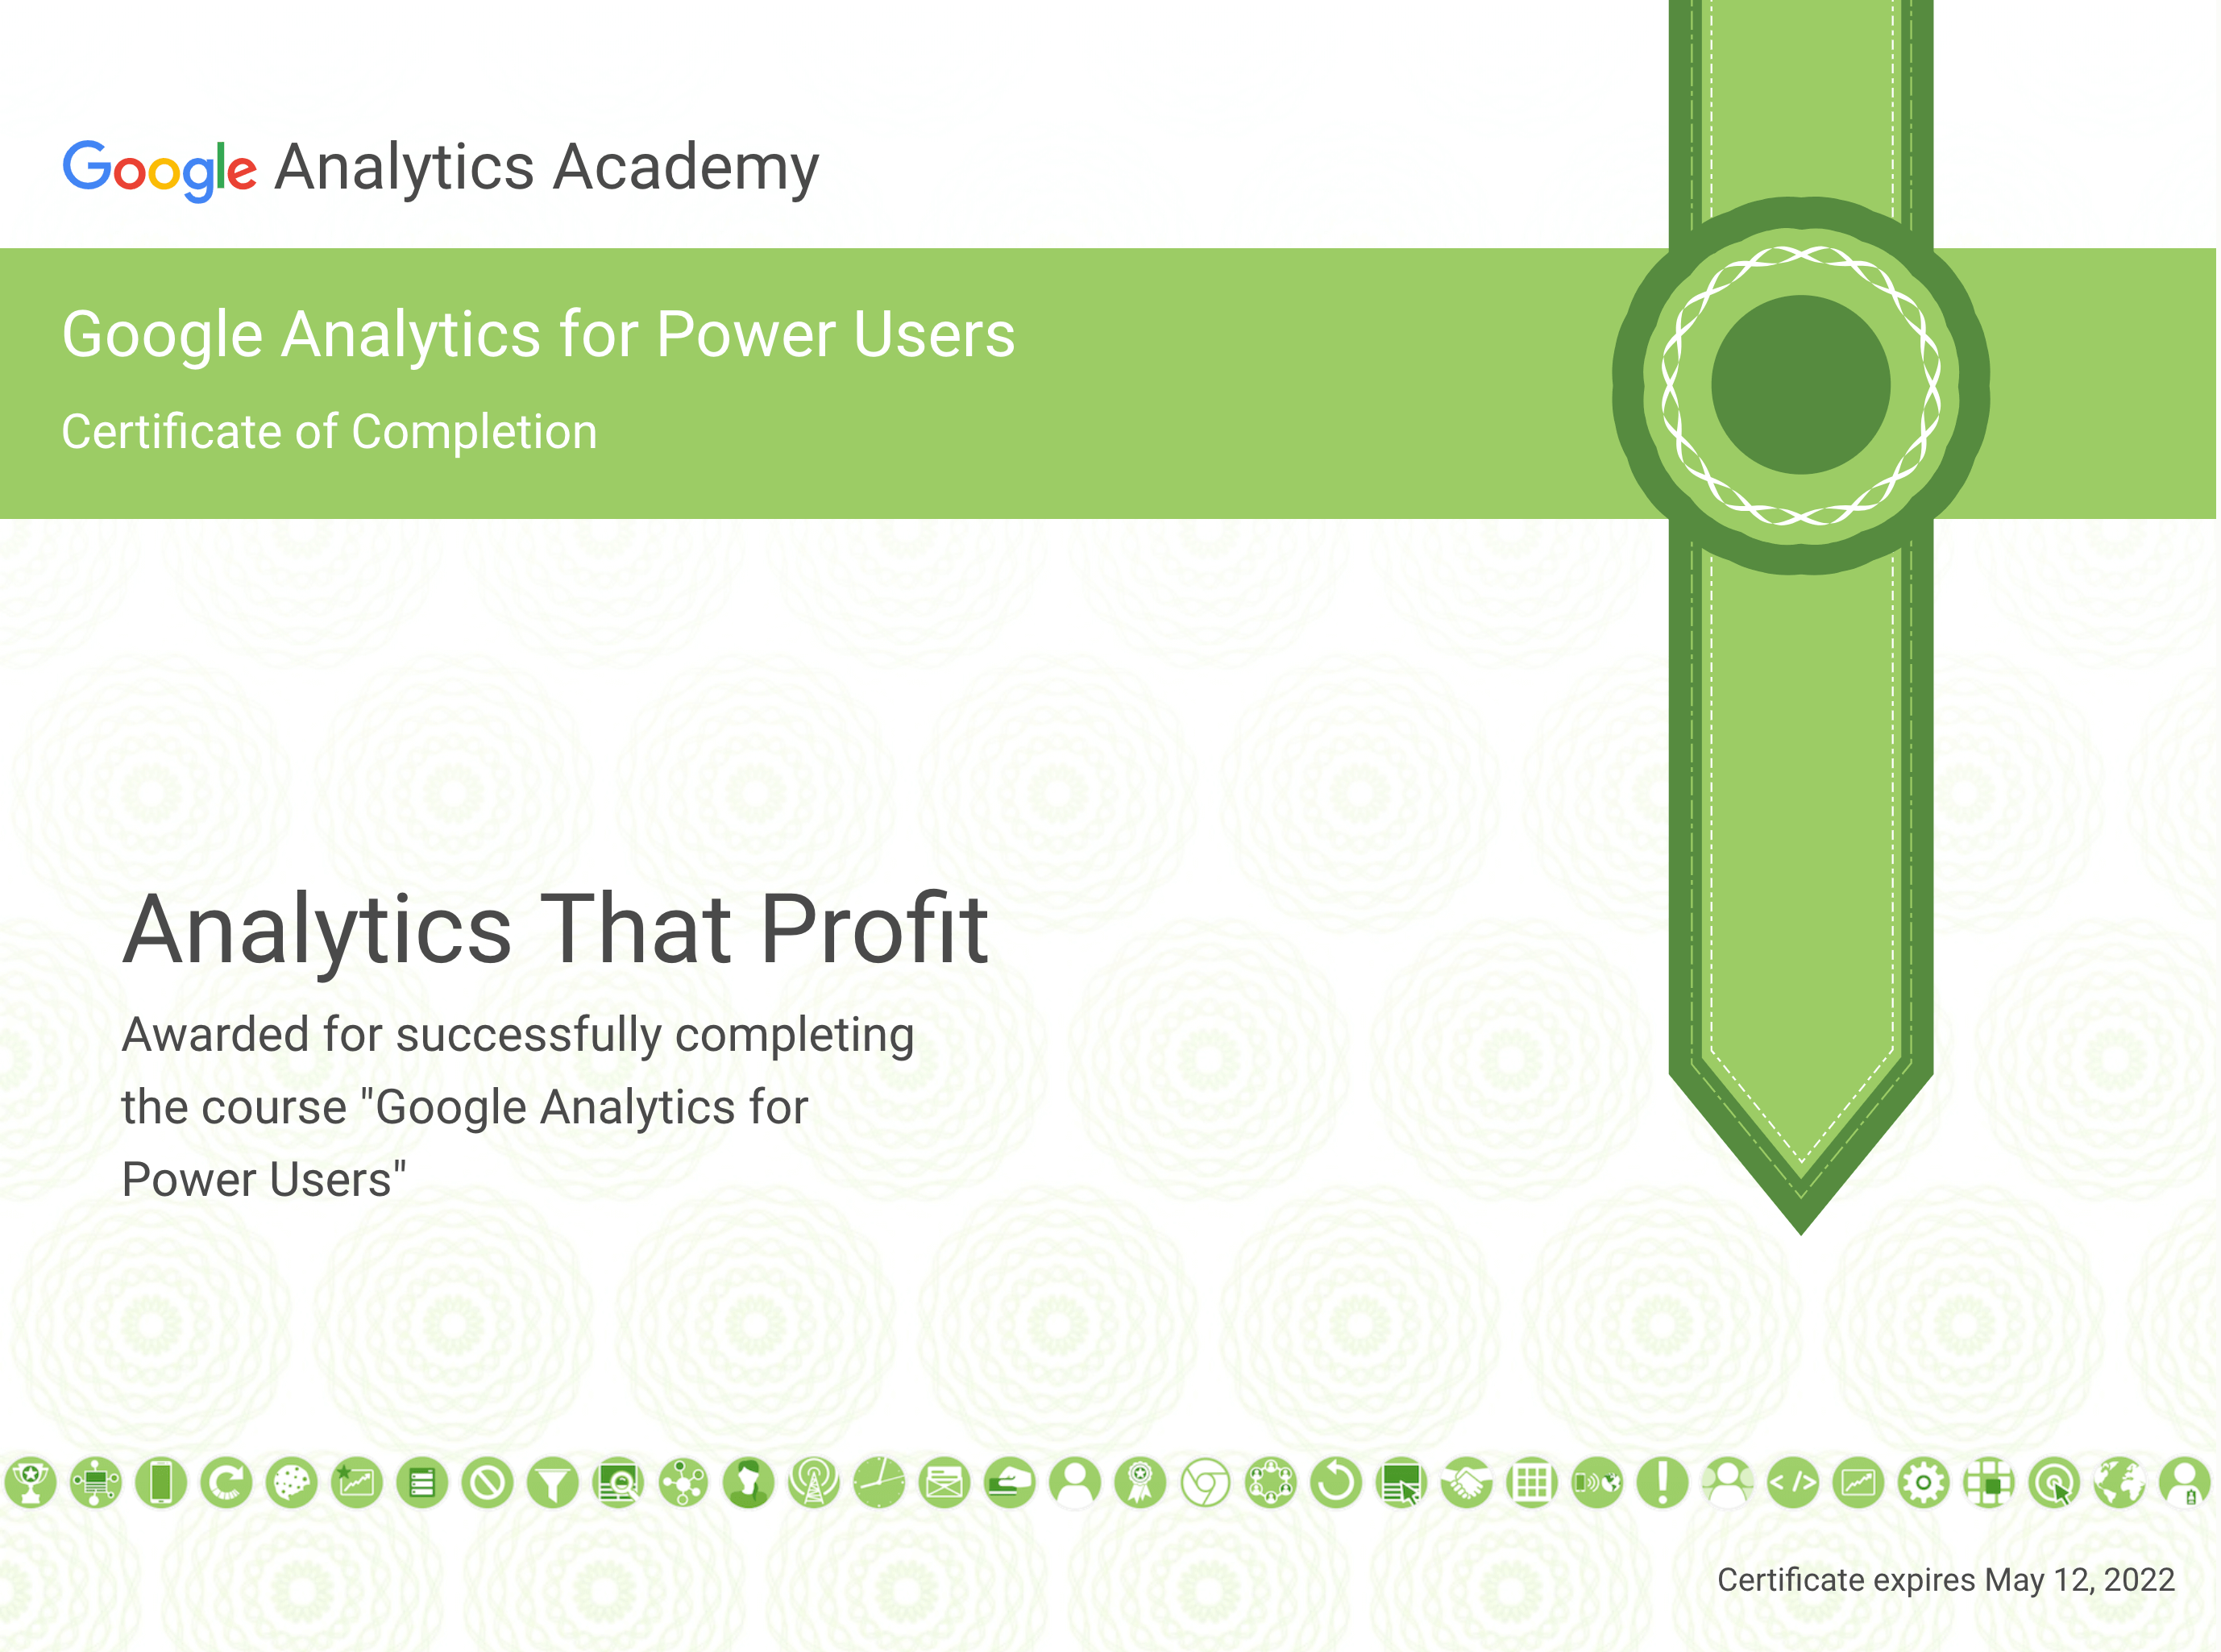 Google Analytics Power Users_analytics that profit